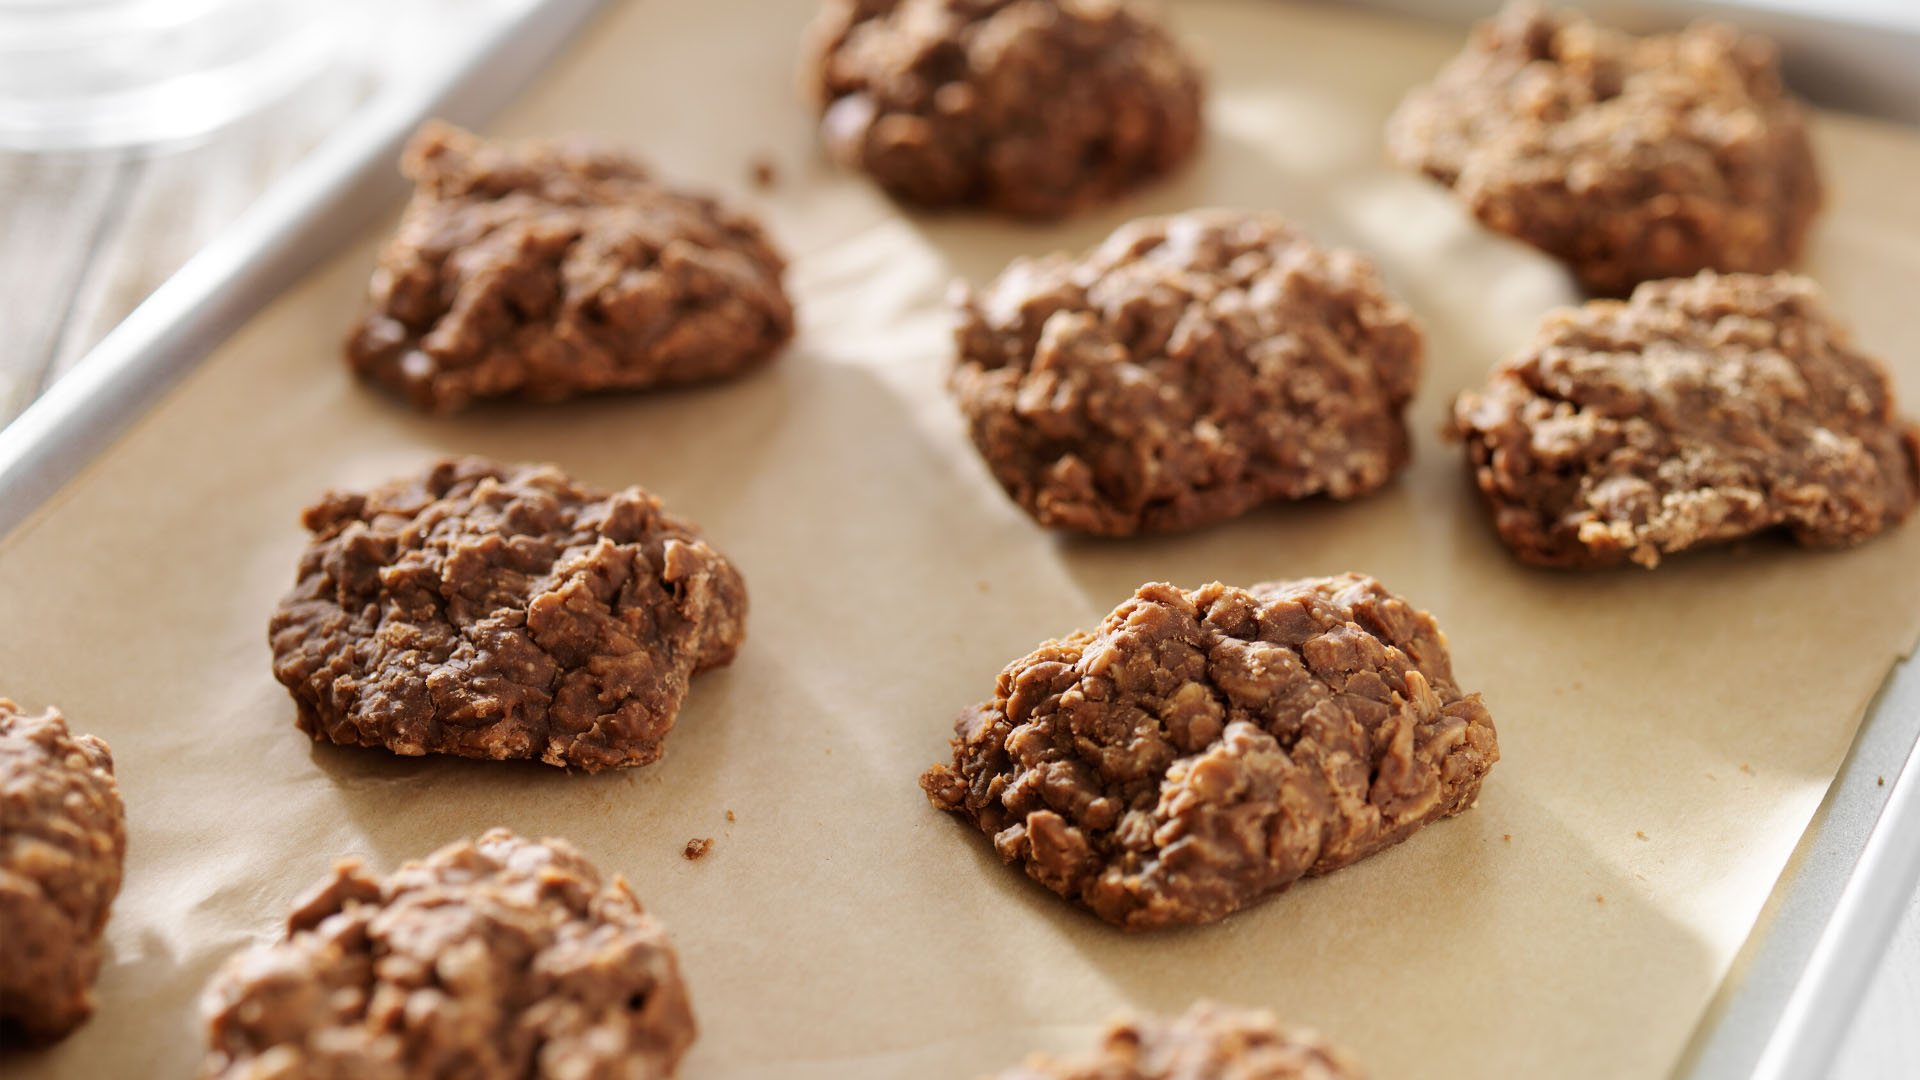 Image of Peanut Butter No-Bake Cookies with Oats and Flax Seeds